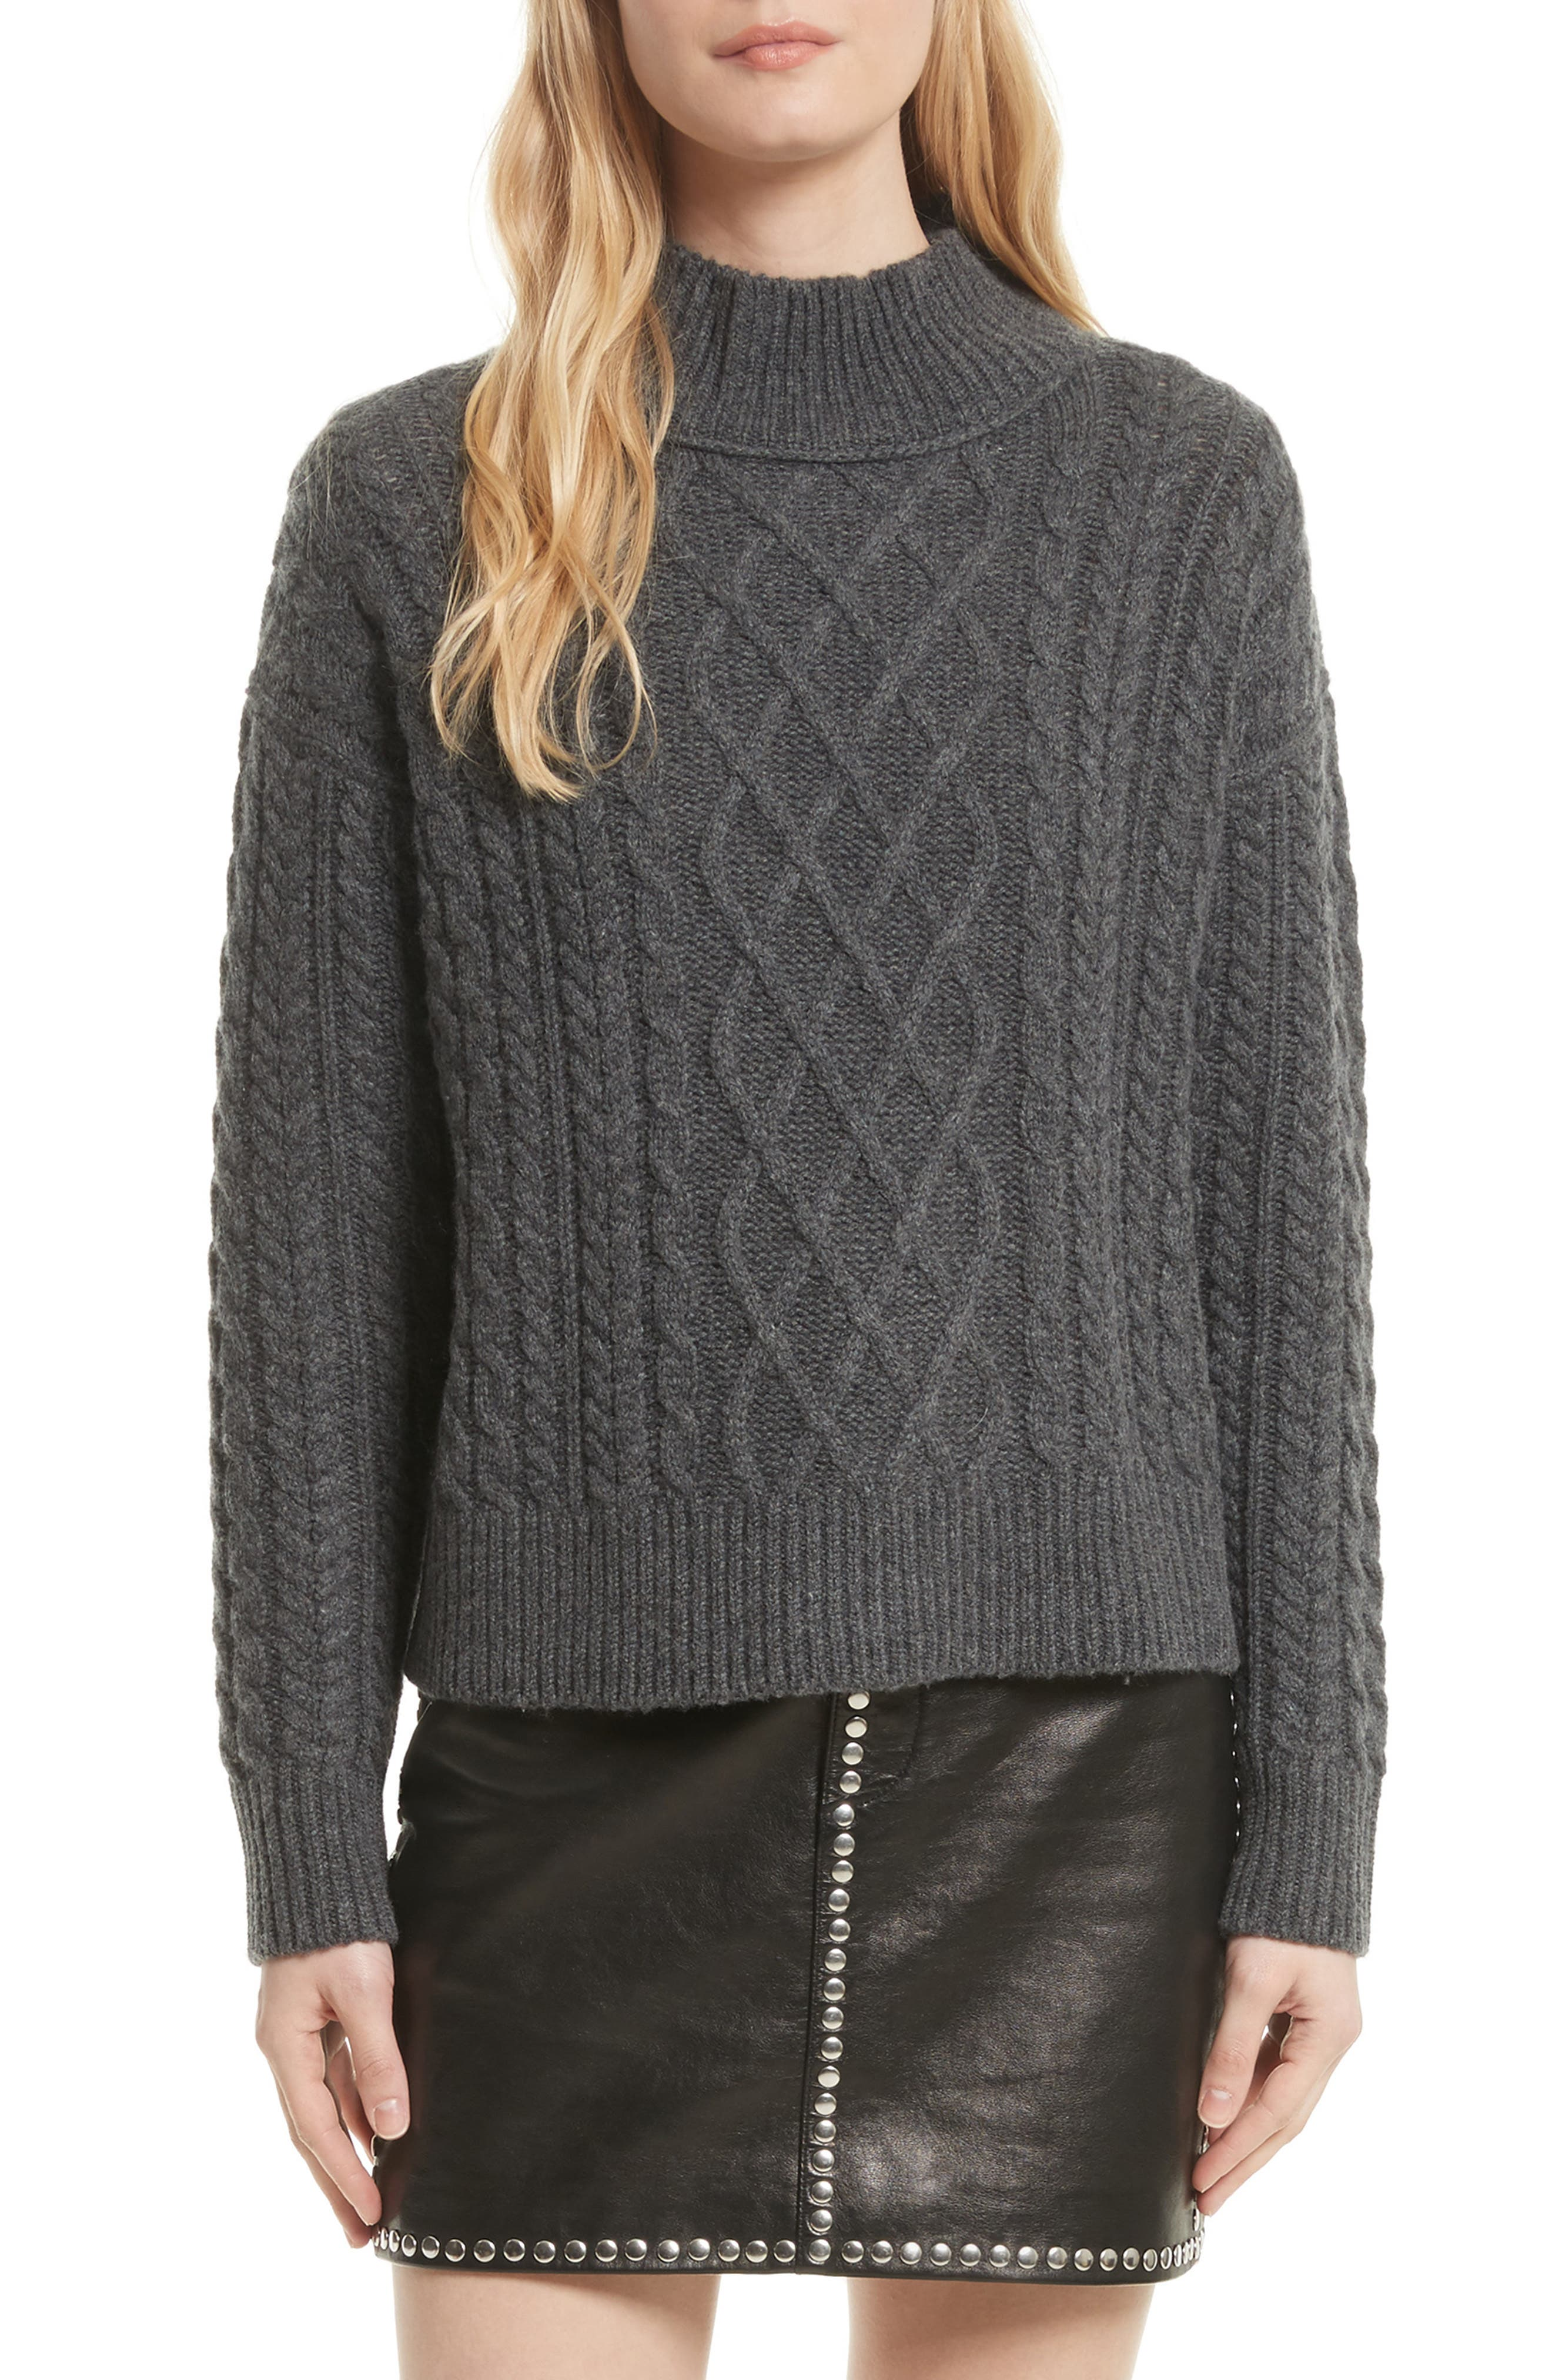 Alternate Image 1 Selected - FRAME Wool & Cashmere Cable Knit Crop Sweater (Nordstrom Exclusive)